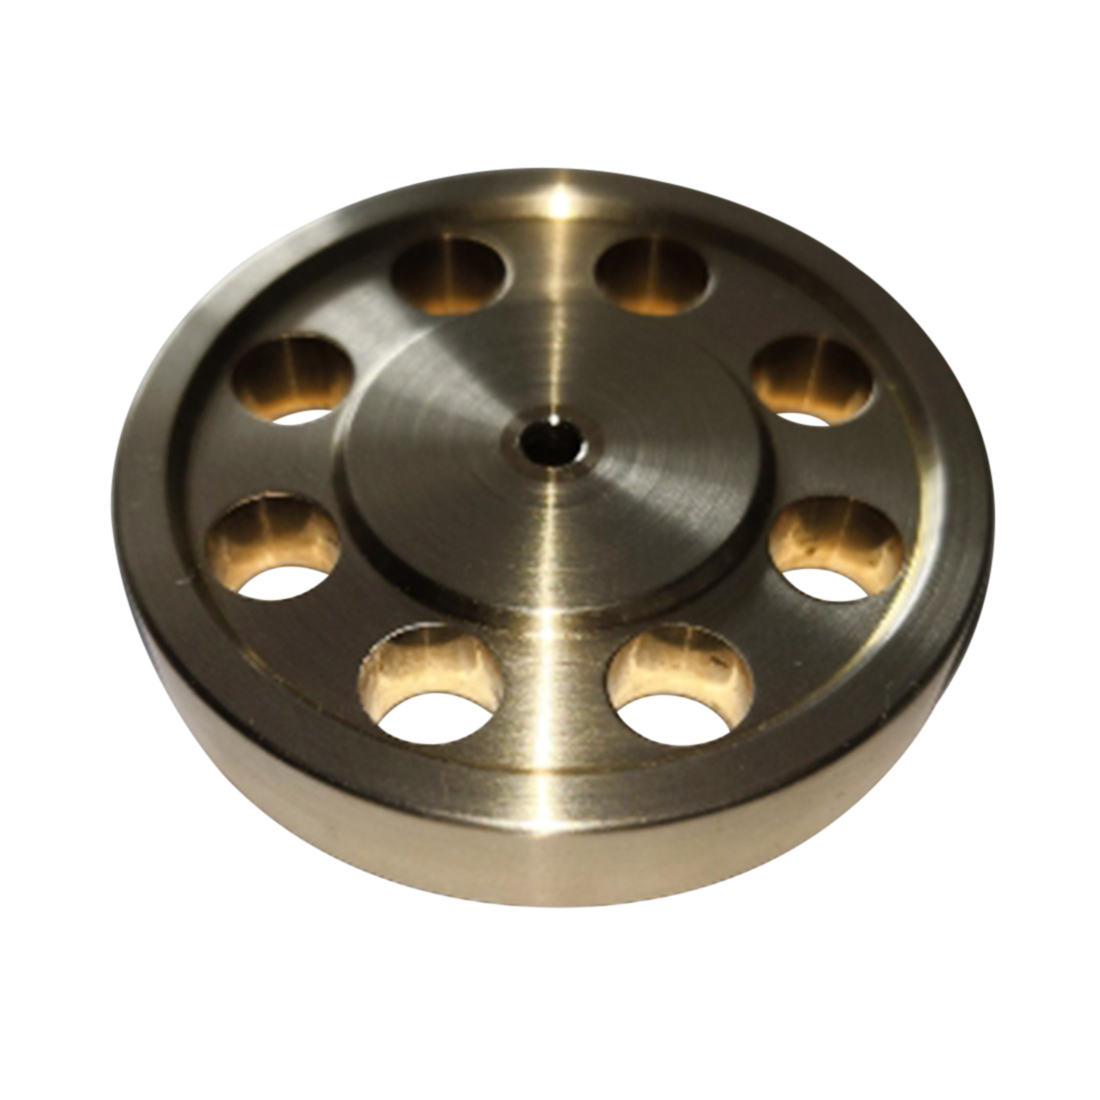 44mm Diameter 3mm Center Bore 8Hole DIY Accessory Brass Flywheel For Stirling Engine Model